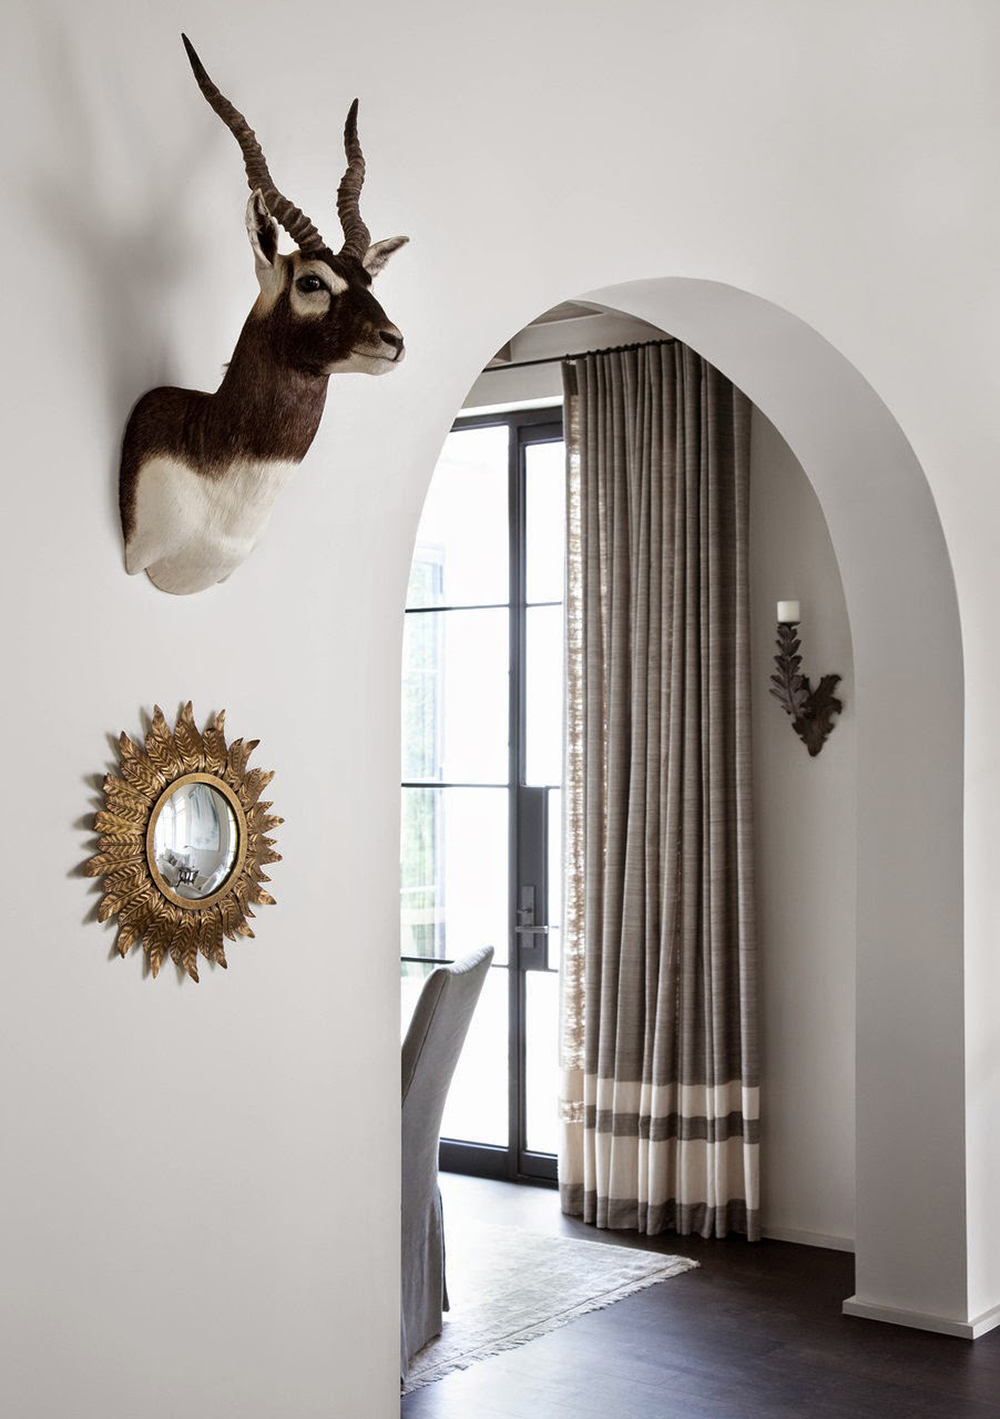 Best of Etsy : Round Wall Mirrors - roomfortuesday.com